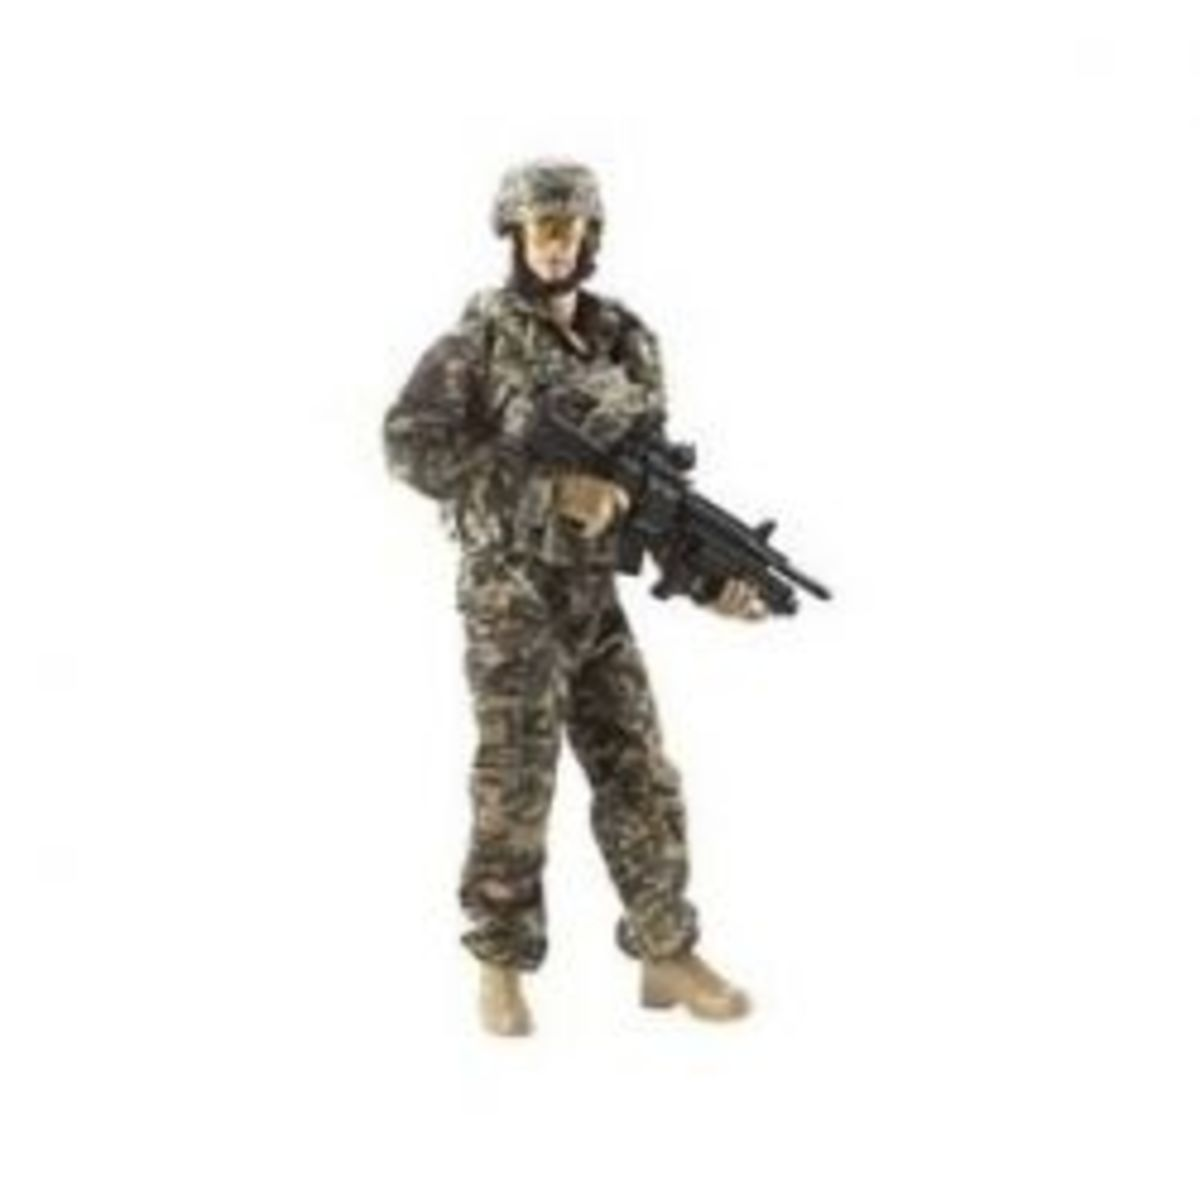 HM Armed Forces - the new Action Man